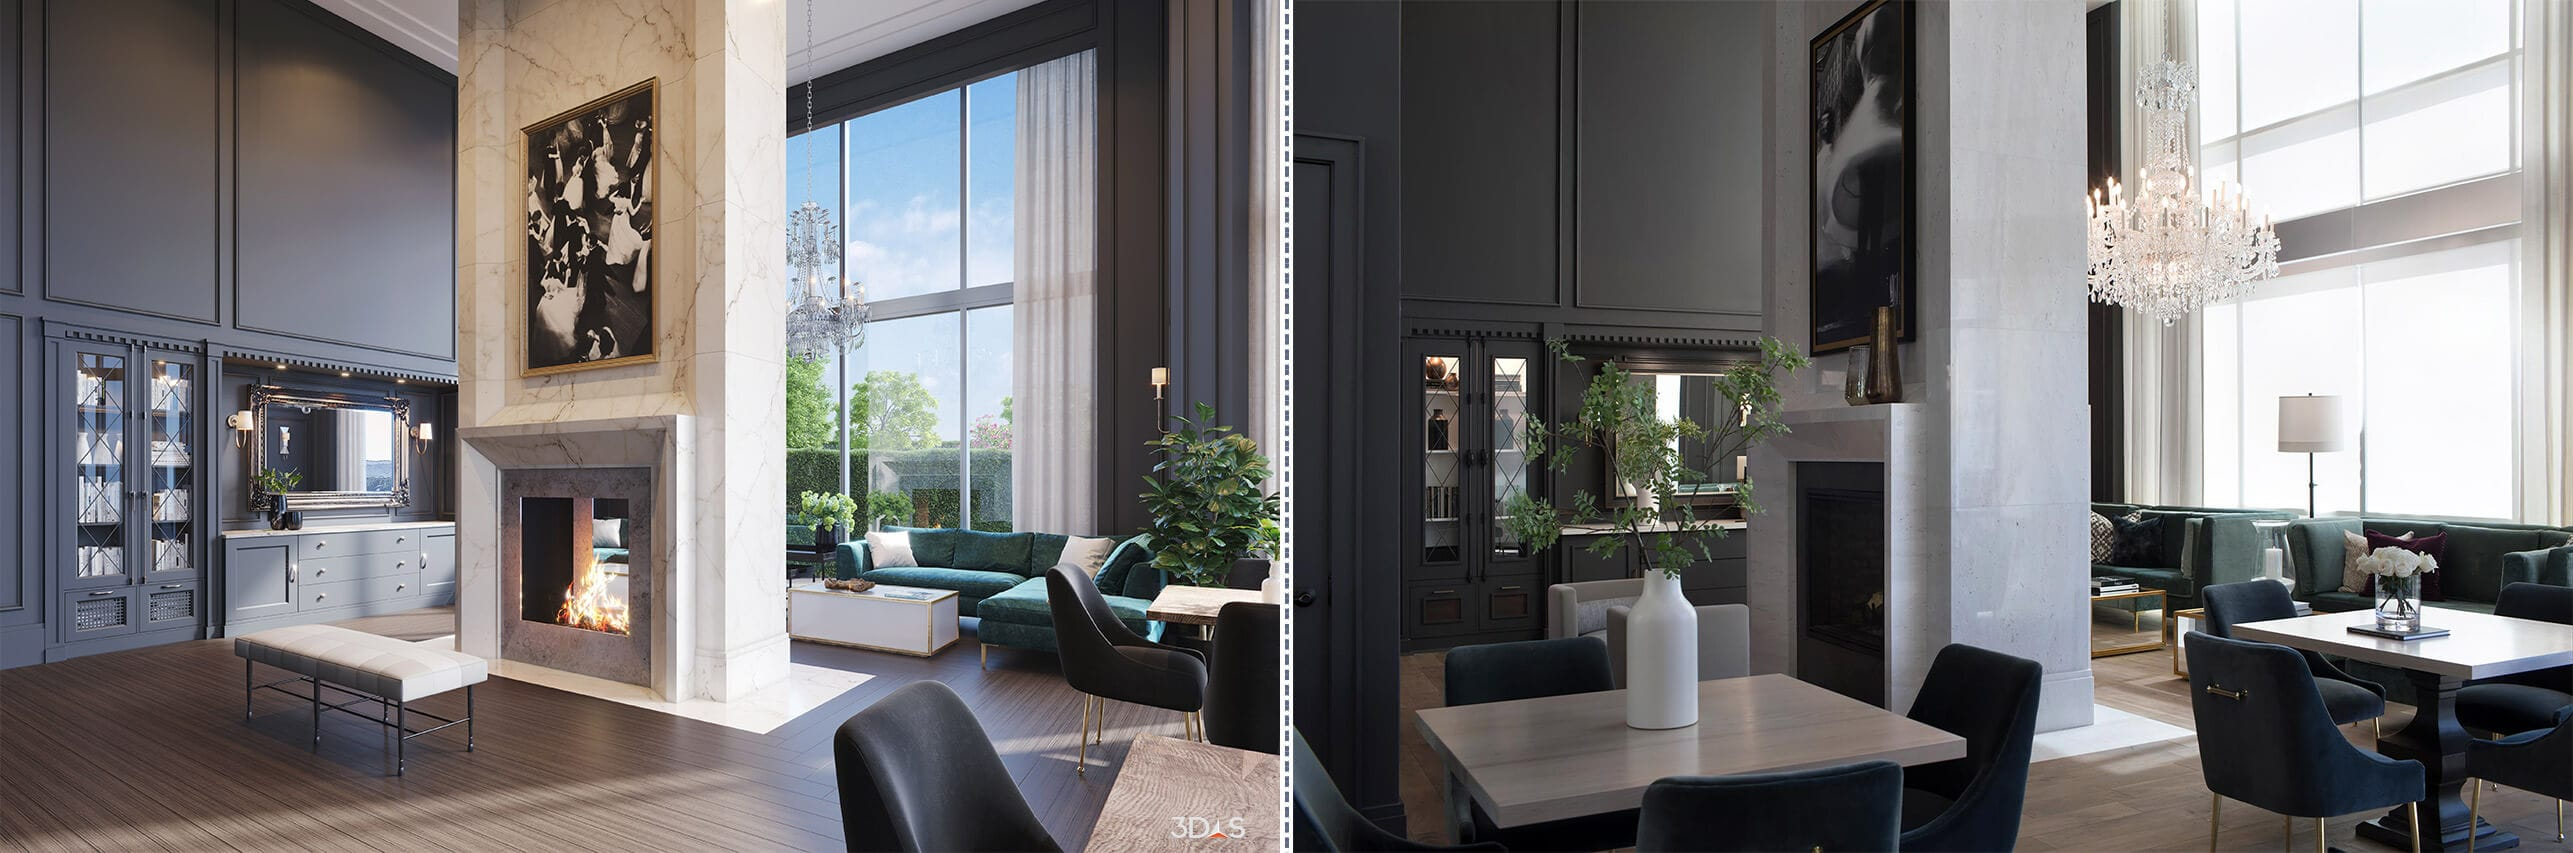 3D Rendering or Photo - Which is the Better Huntley Park Avenue Clubroom Interior Image?